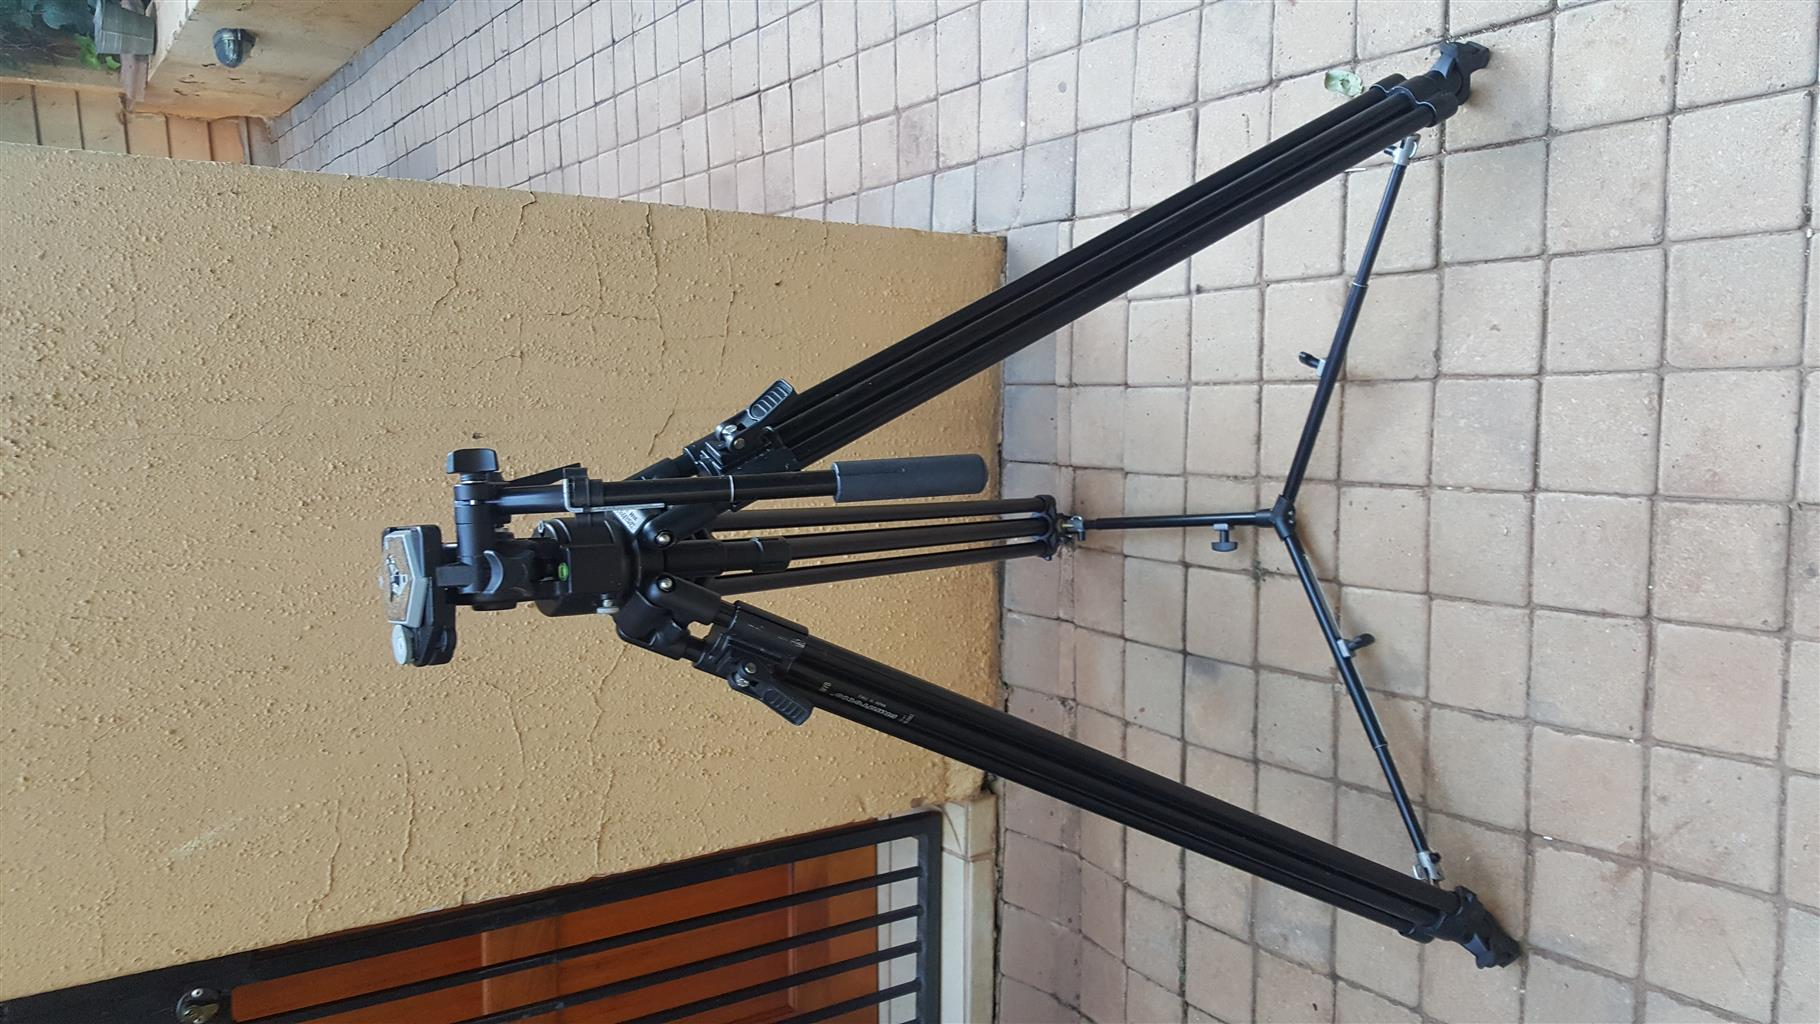 Manfrotto 351MVB professional tripod in hard carry case